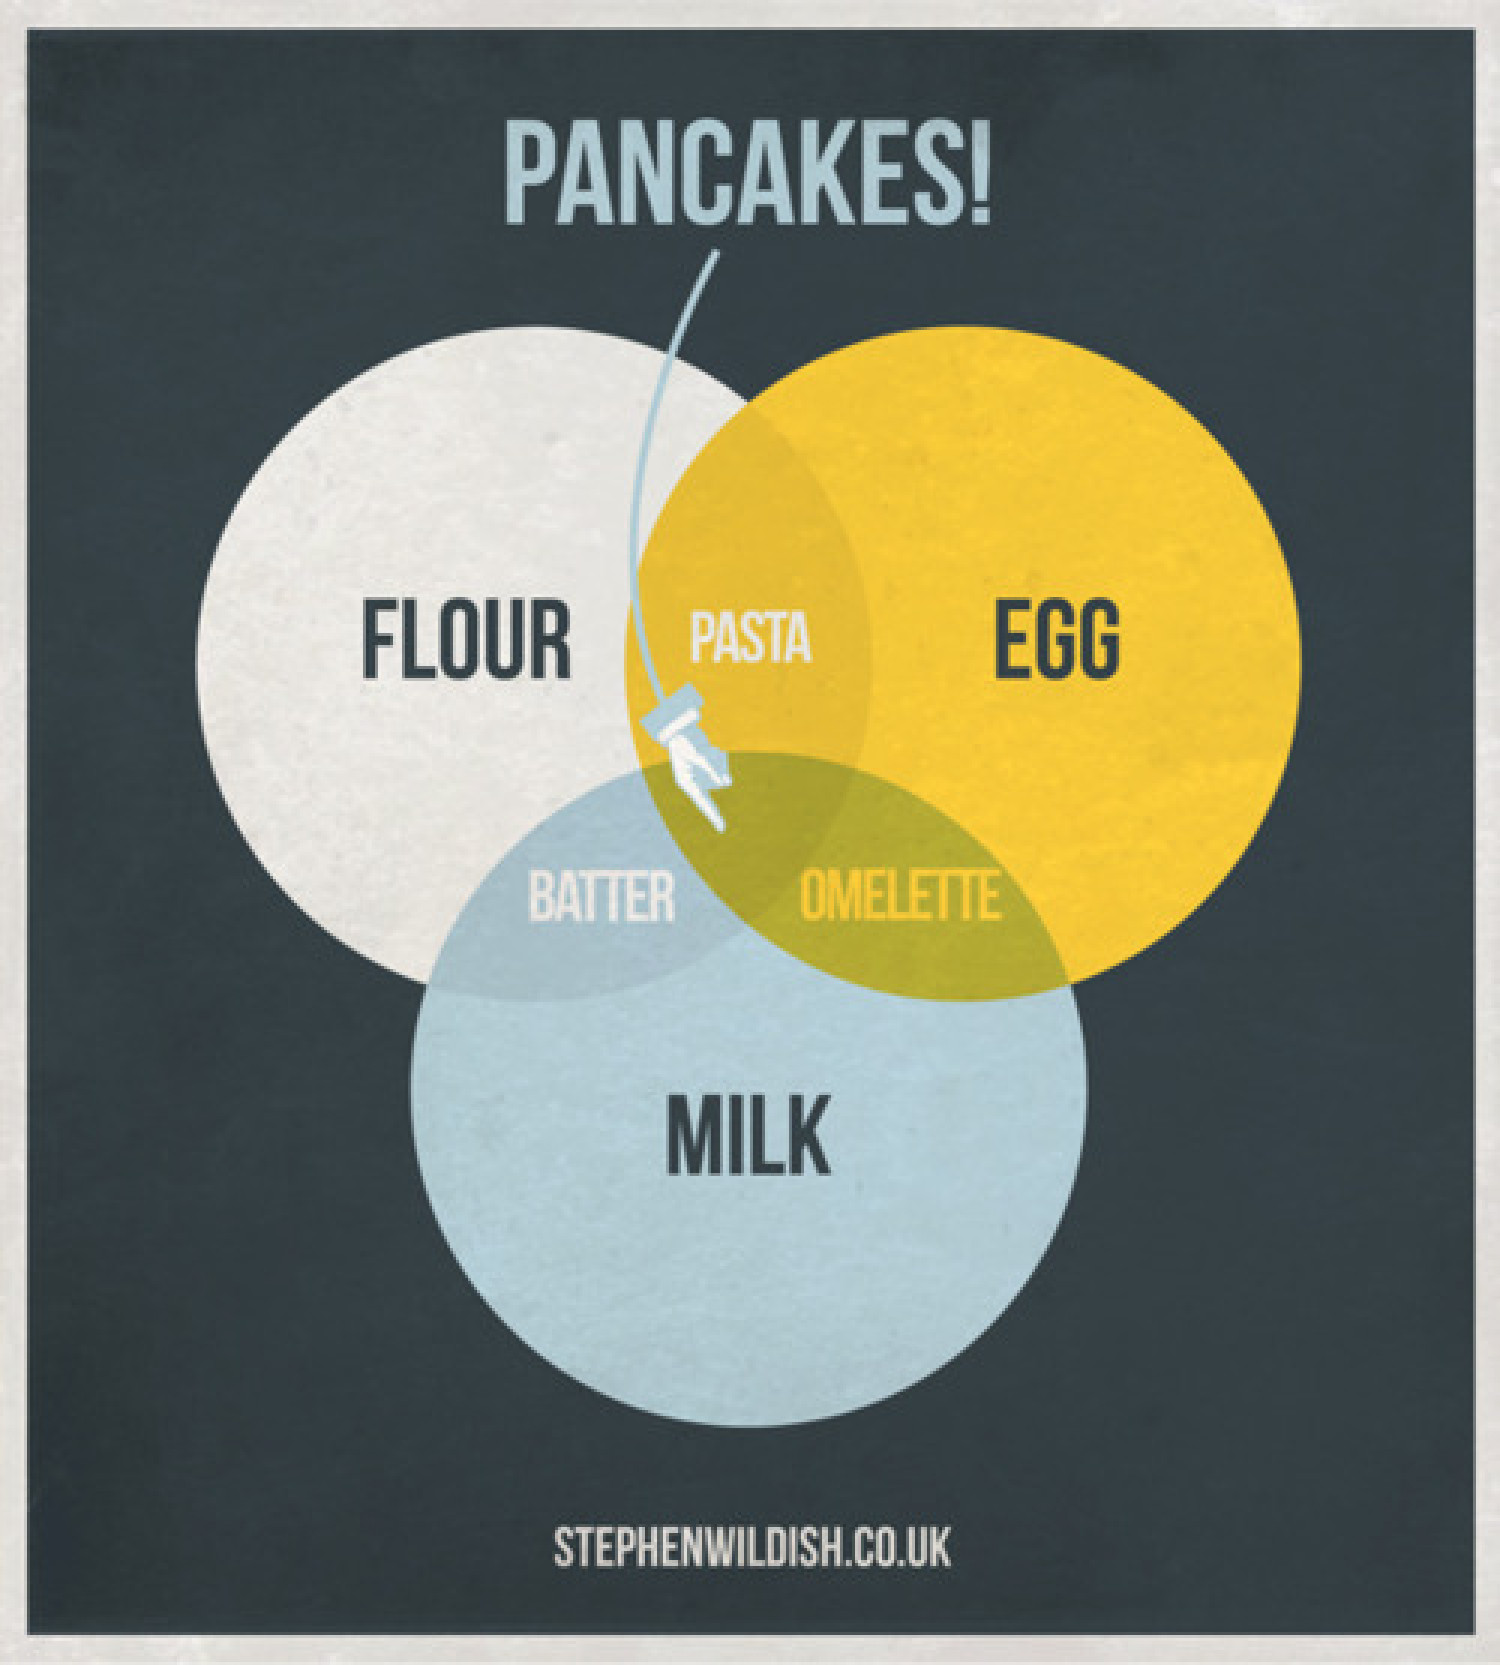 Pancakes! Infographic